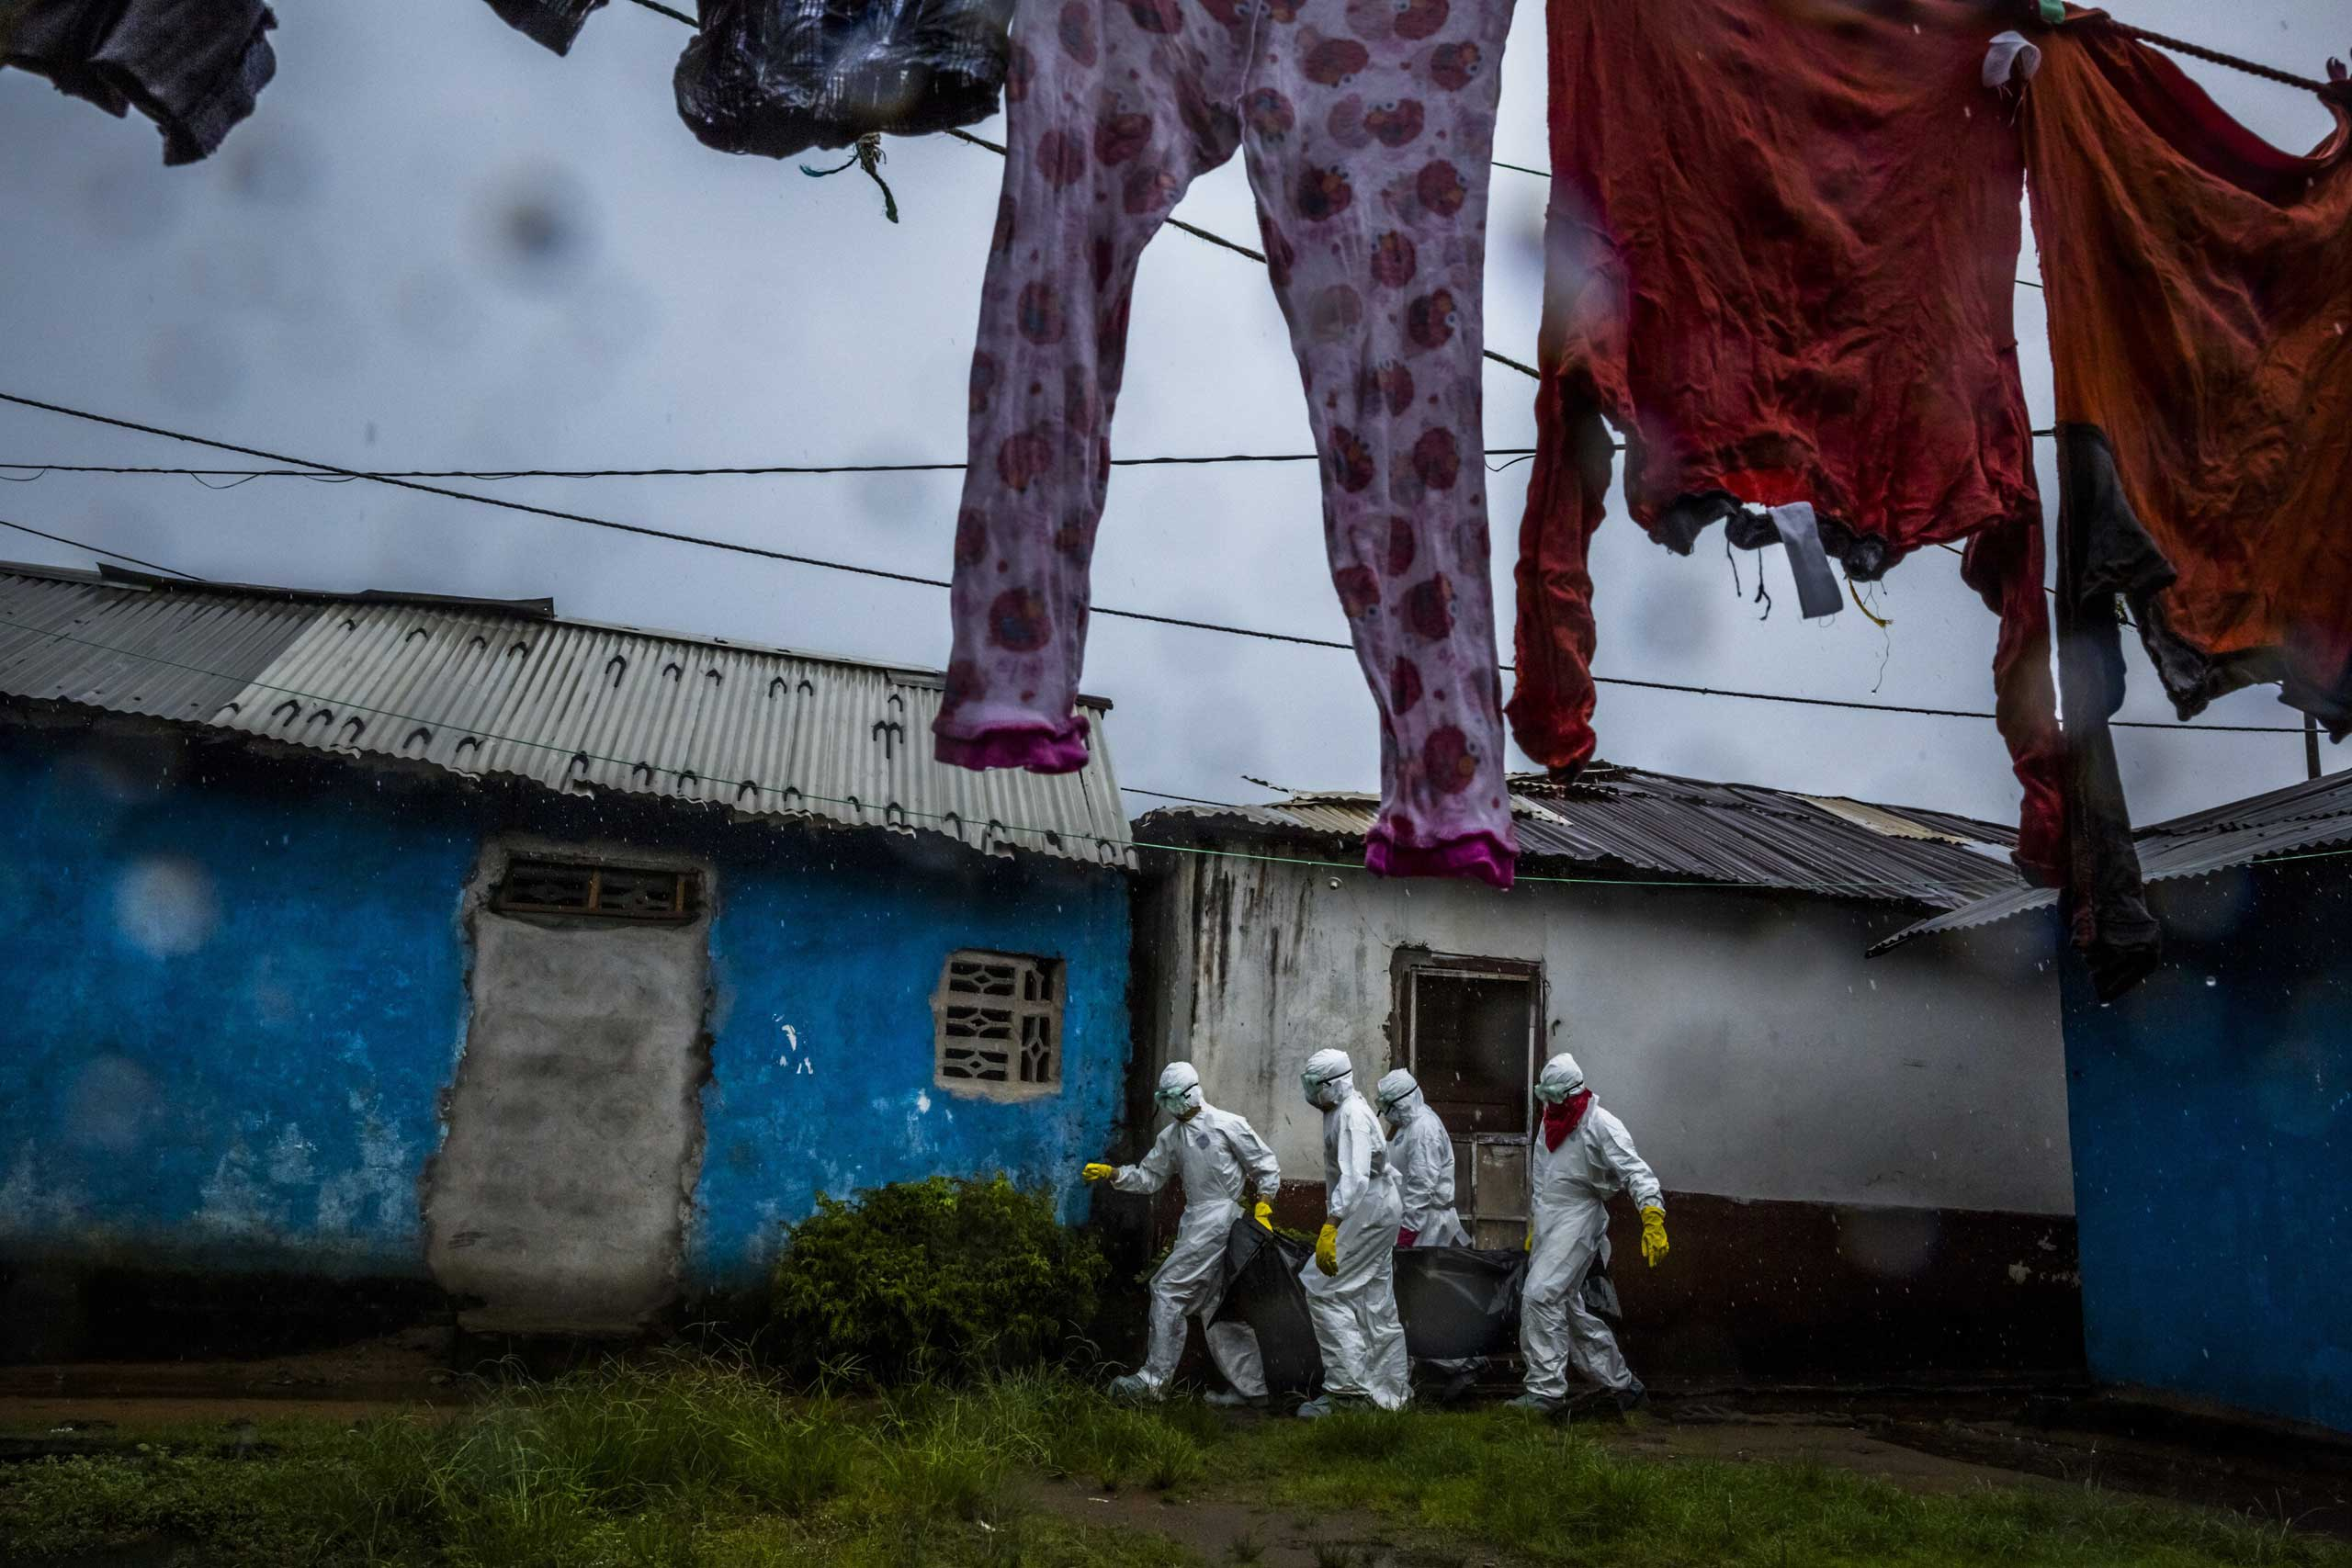 A burial team collects the body of a 75-year-old woman in a neighborhood called PHP in Monrovia, Liberia, Sept. 18, 2014.